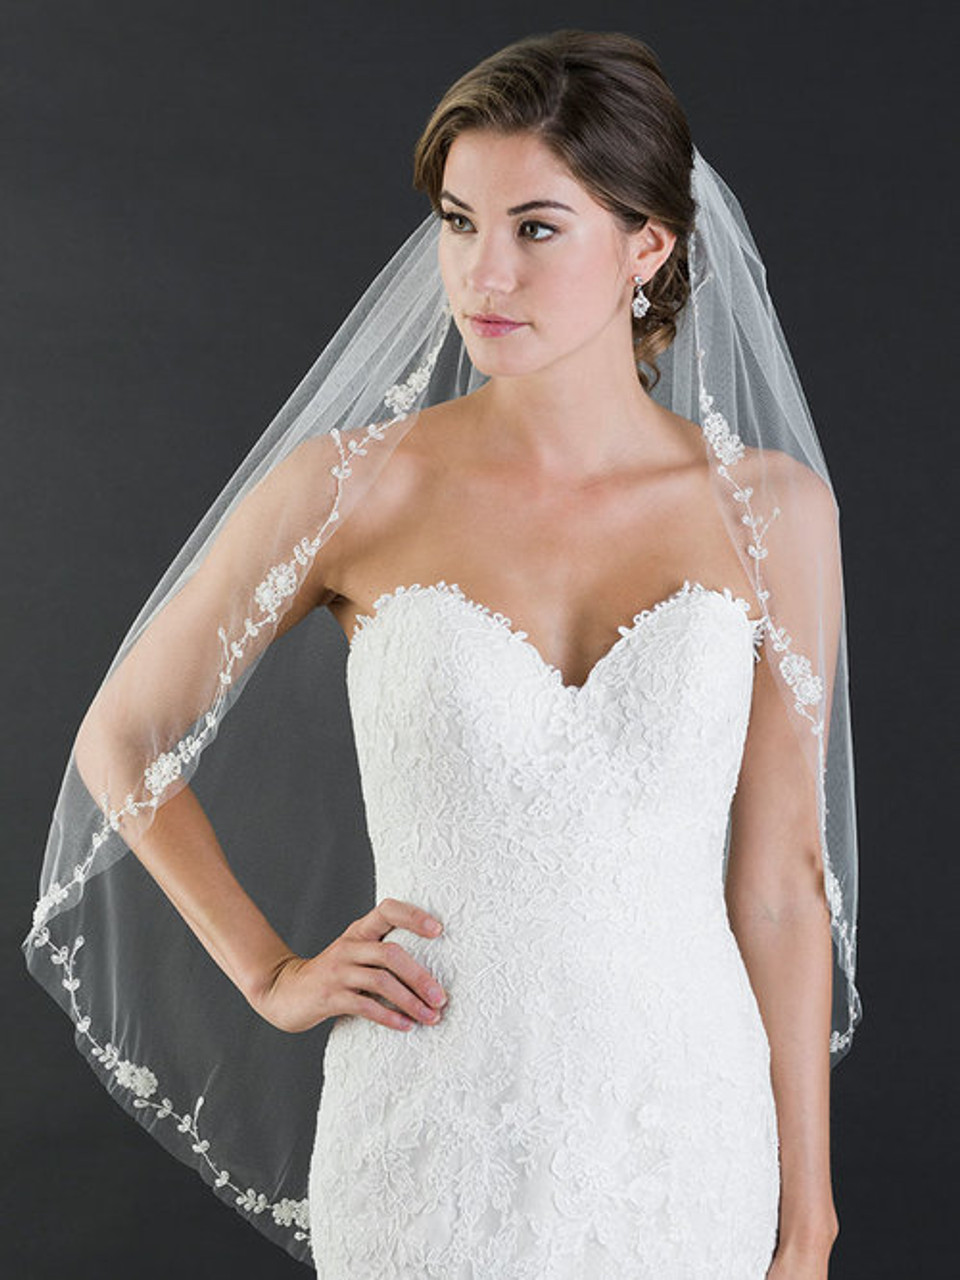 Bel Aire Bridal Veil V7452 1-tier fingertip romantic veil of embroidered flowers and leaves